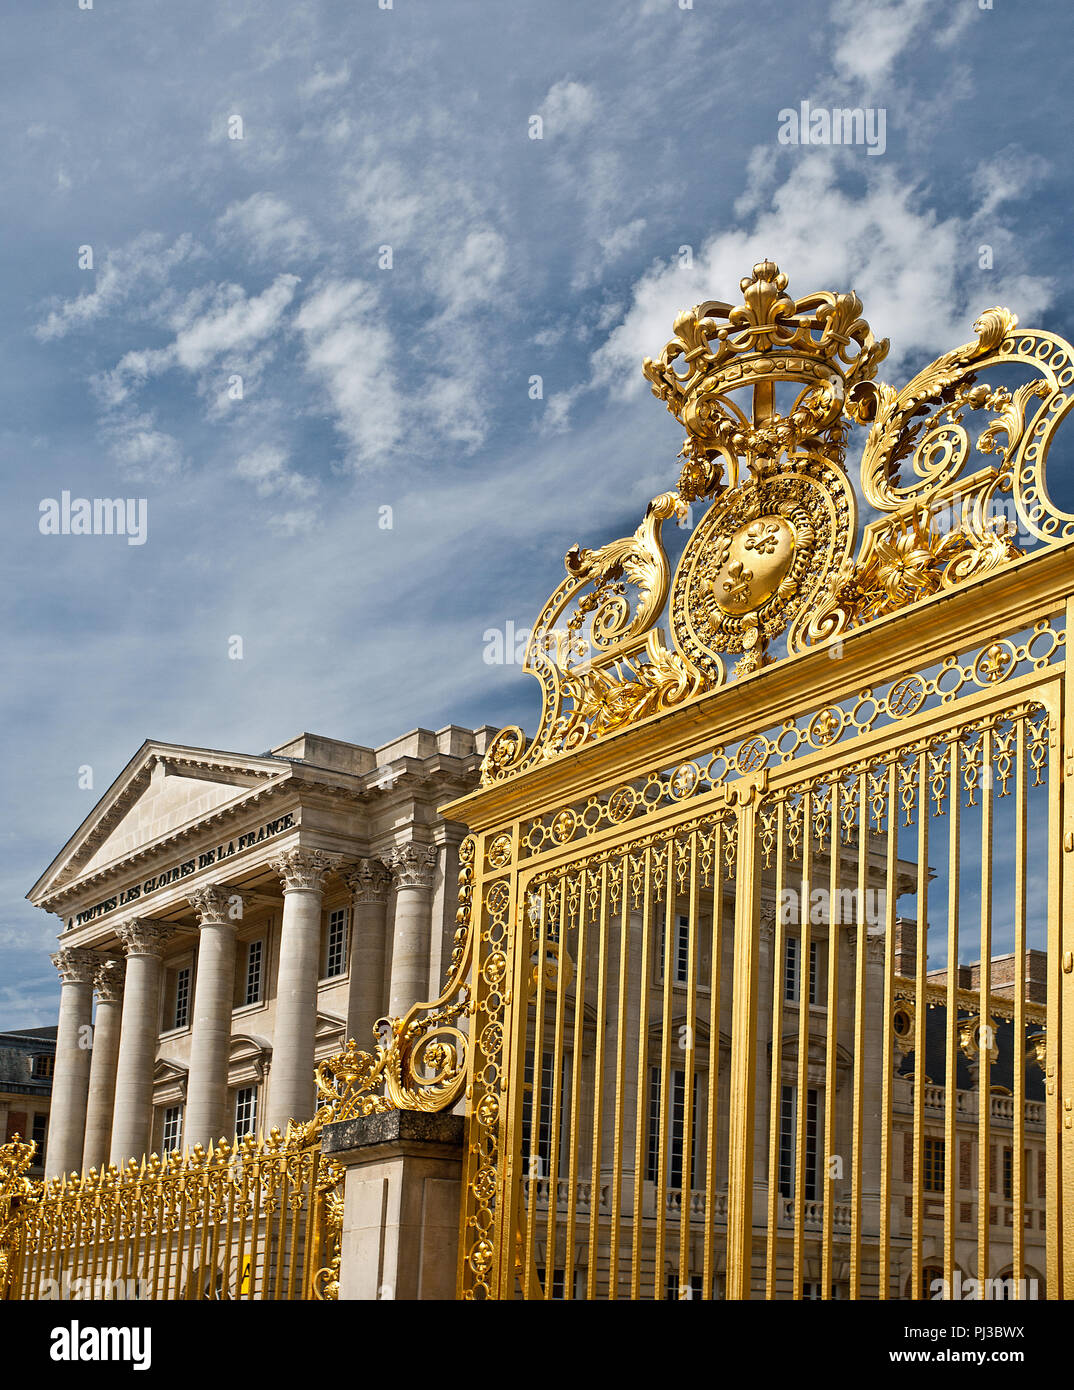 The golden gates of Versailles - Stock Image